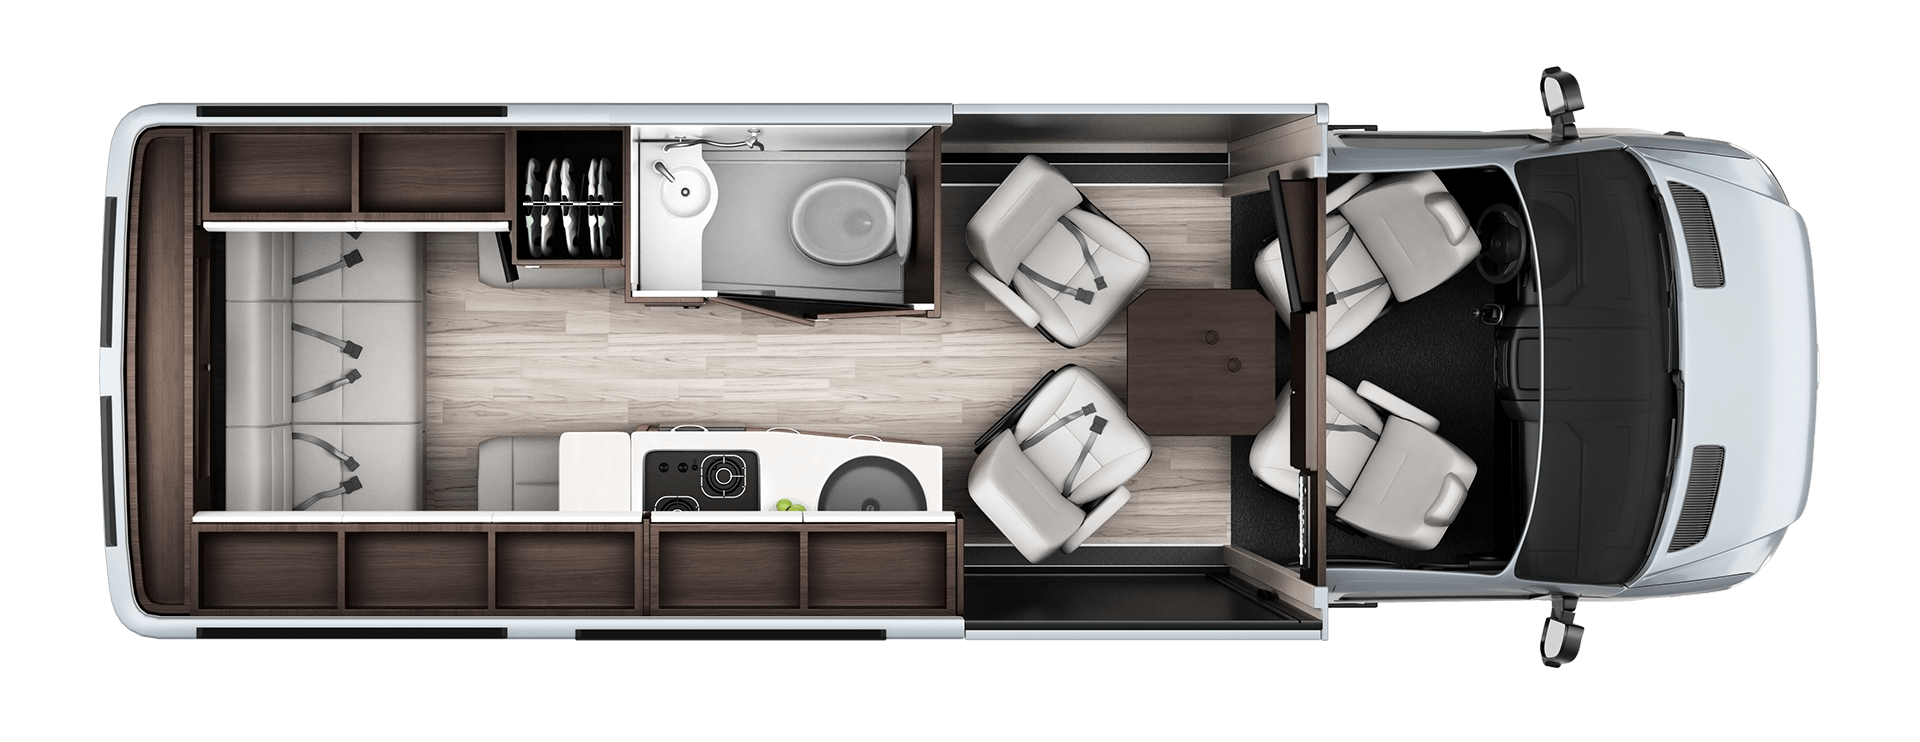 Free Spirit TE Floorplan